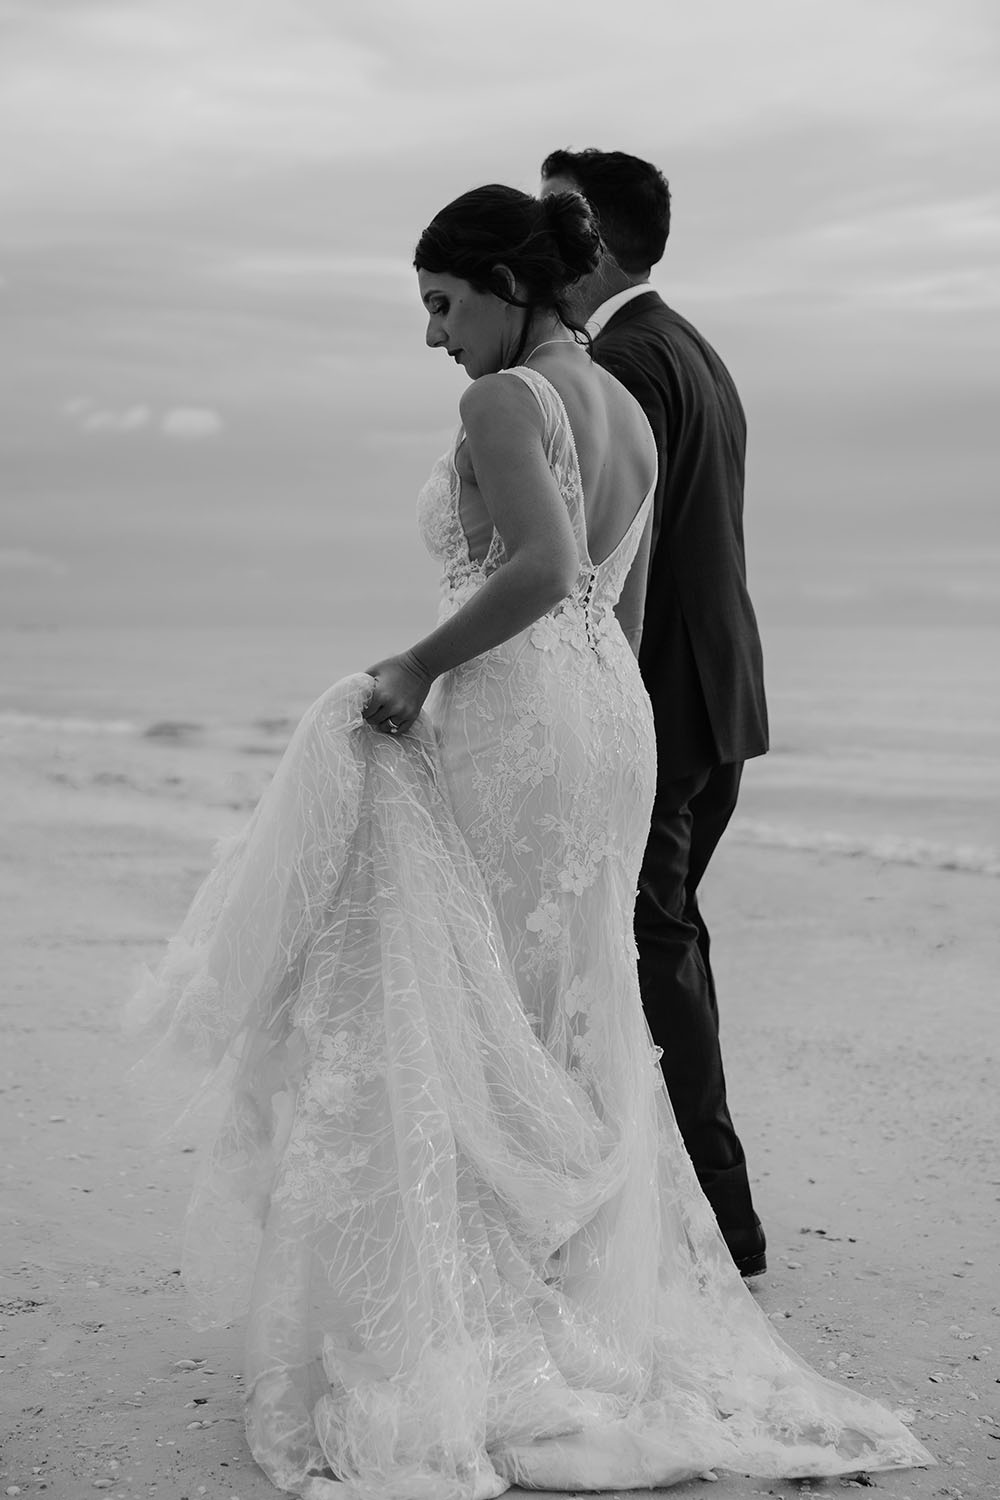 Naples Wedding Photographer, black and white of bride and groom walking on the beach